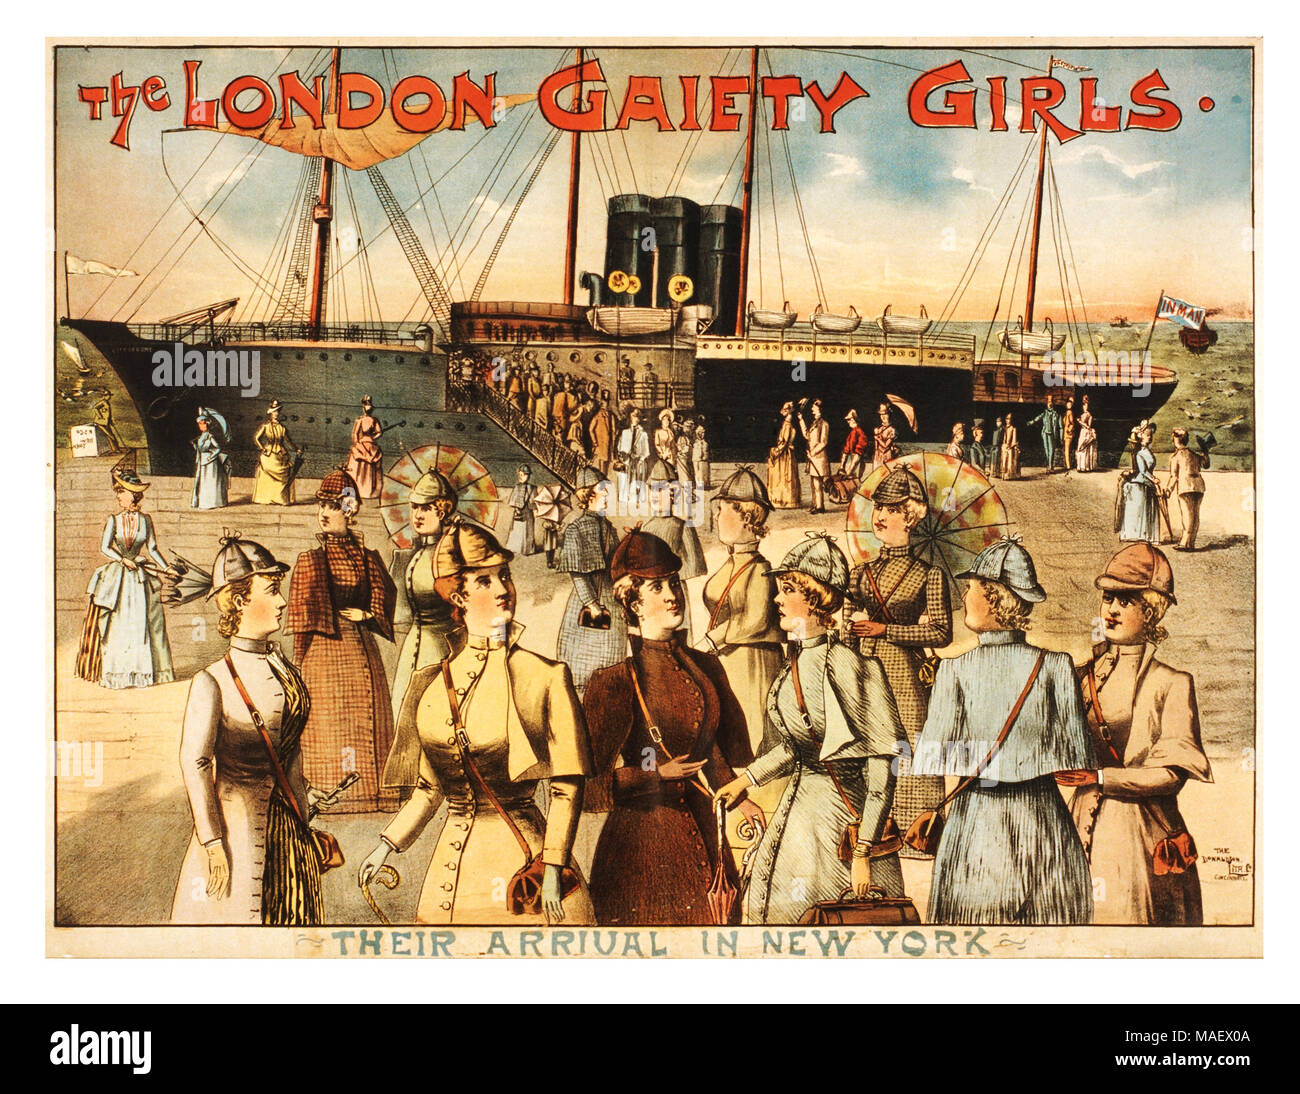 Vintage 1890's Theatre Performance Poster 'The London Gaiety Girls'  arrival in New York. Promotional poster in America - Stock Image